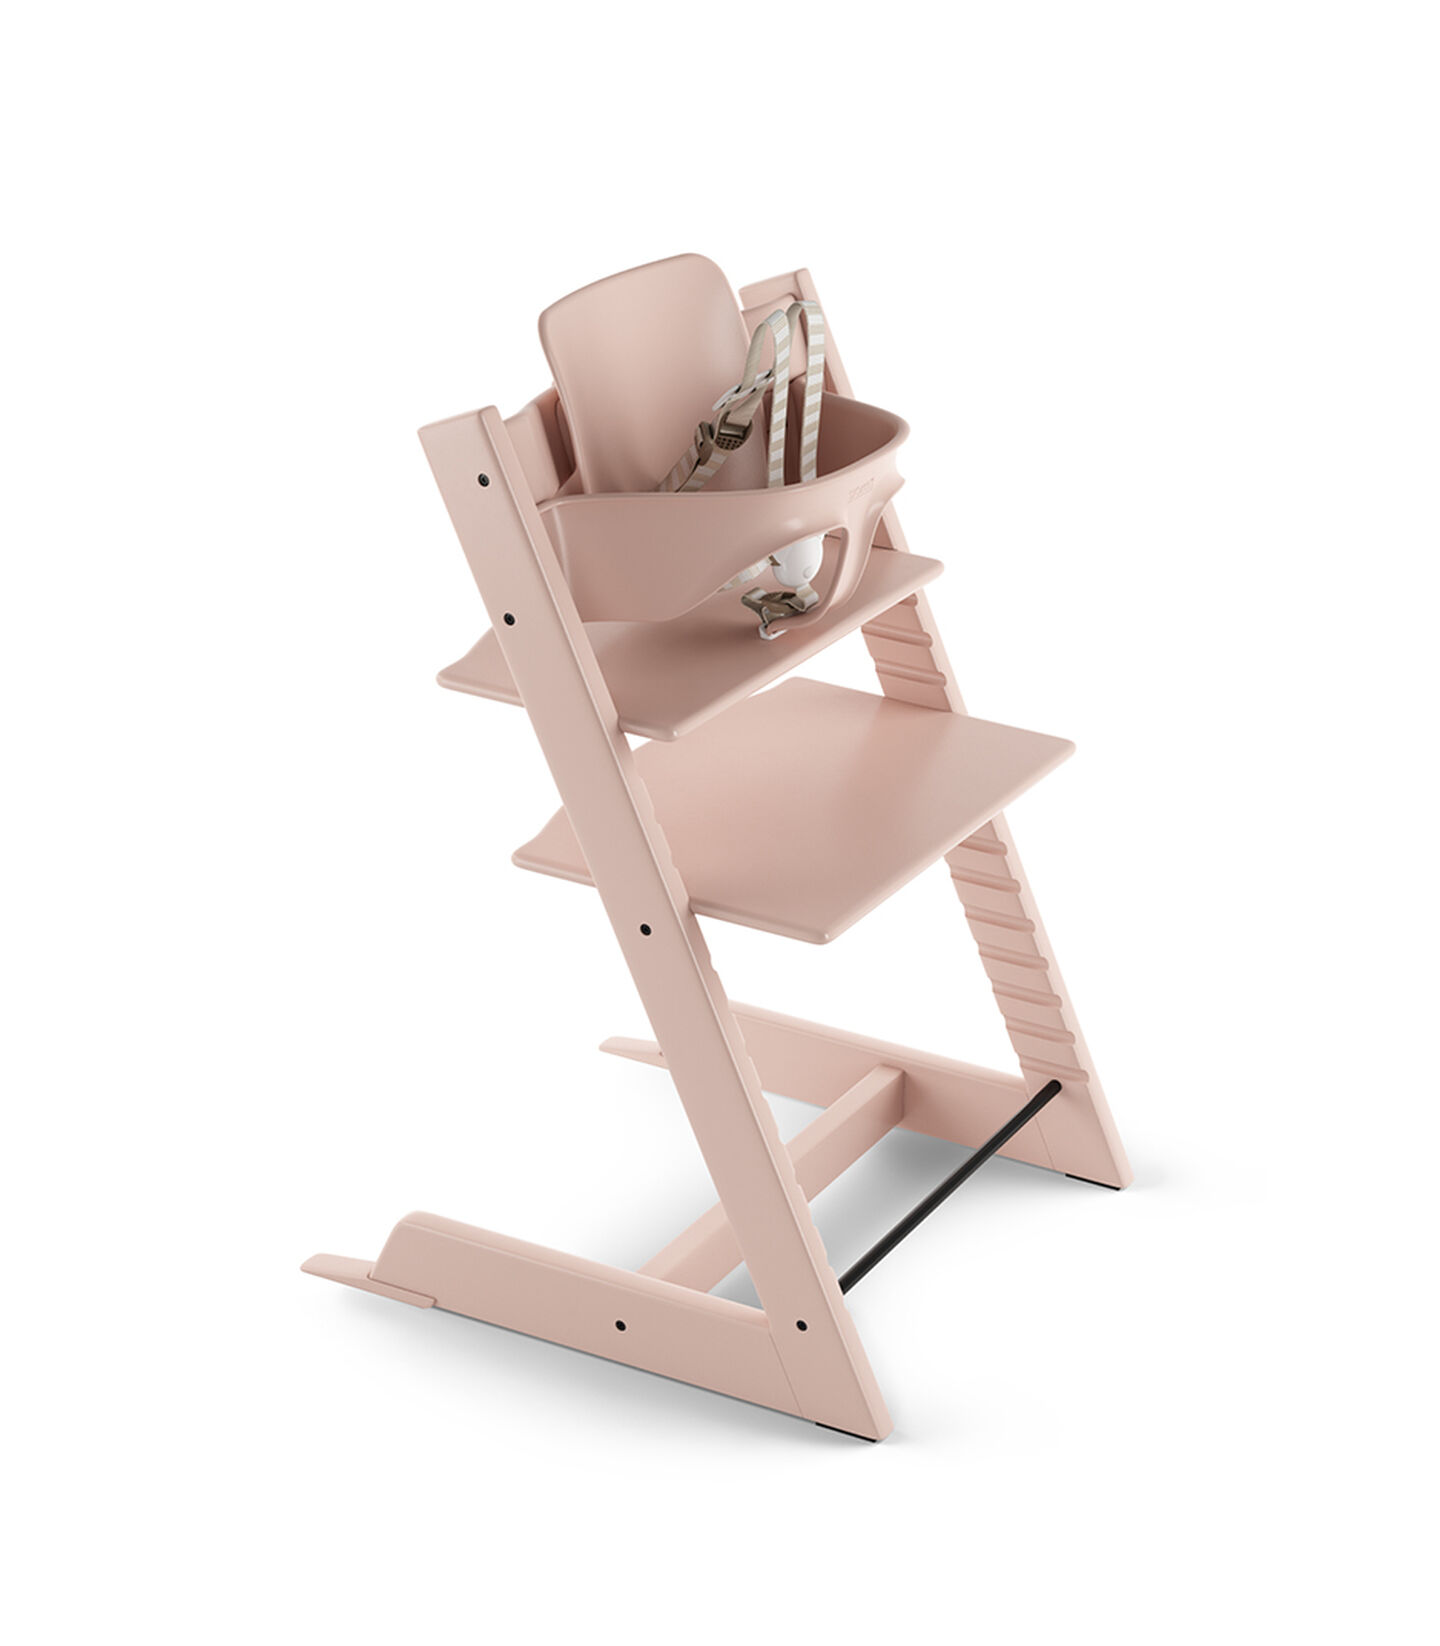 Tripp Trapp® Bundle High Chair US 18 Serene Pink, Serene Pink, mainview view 2